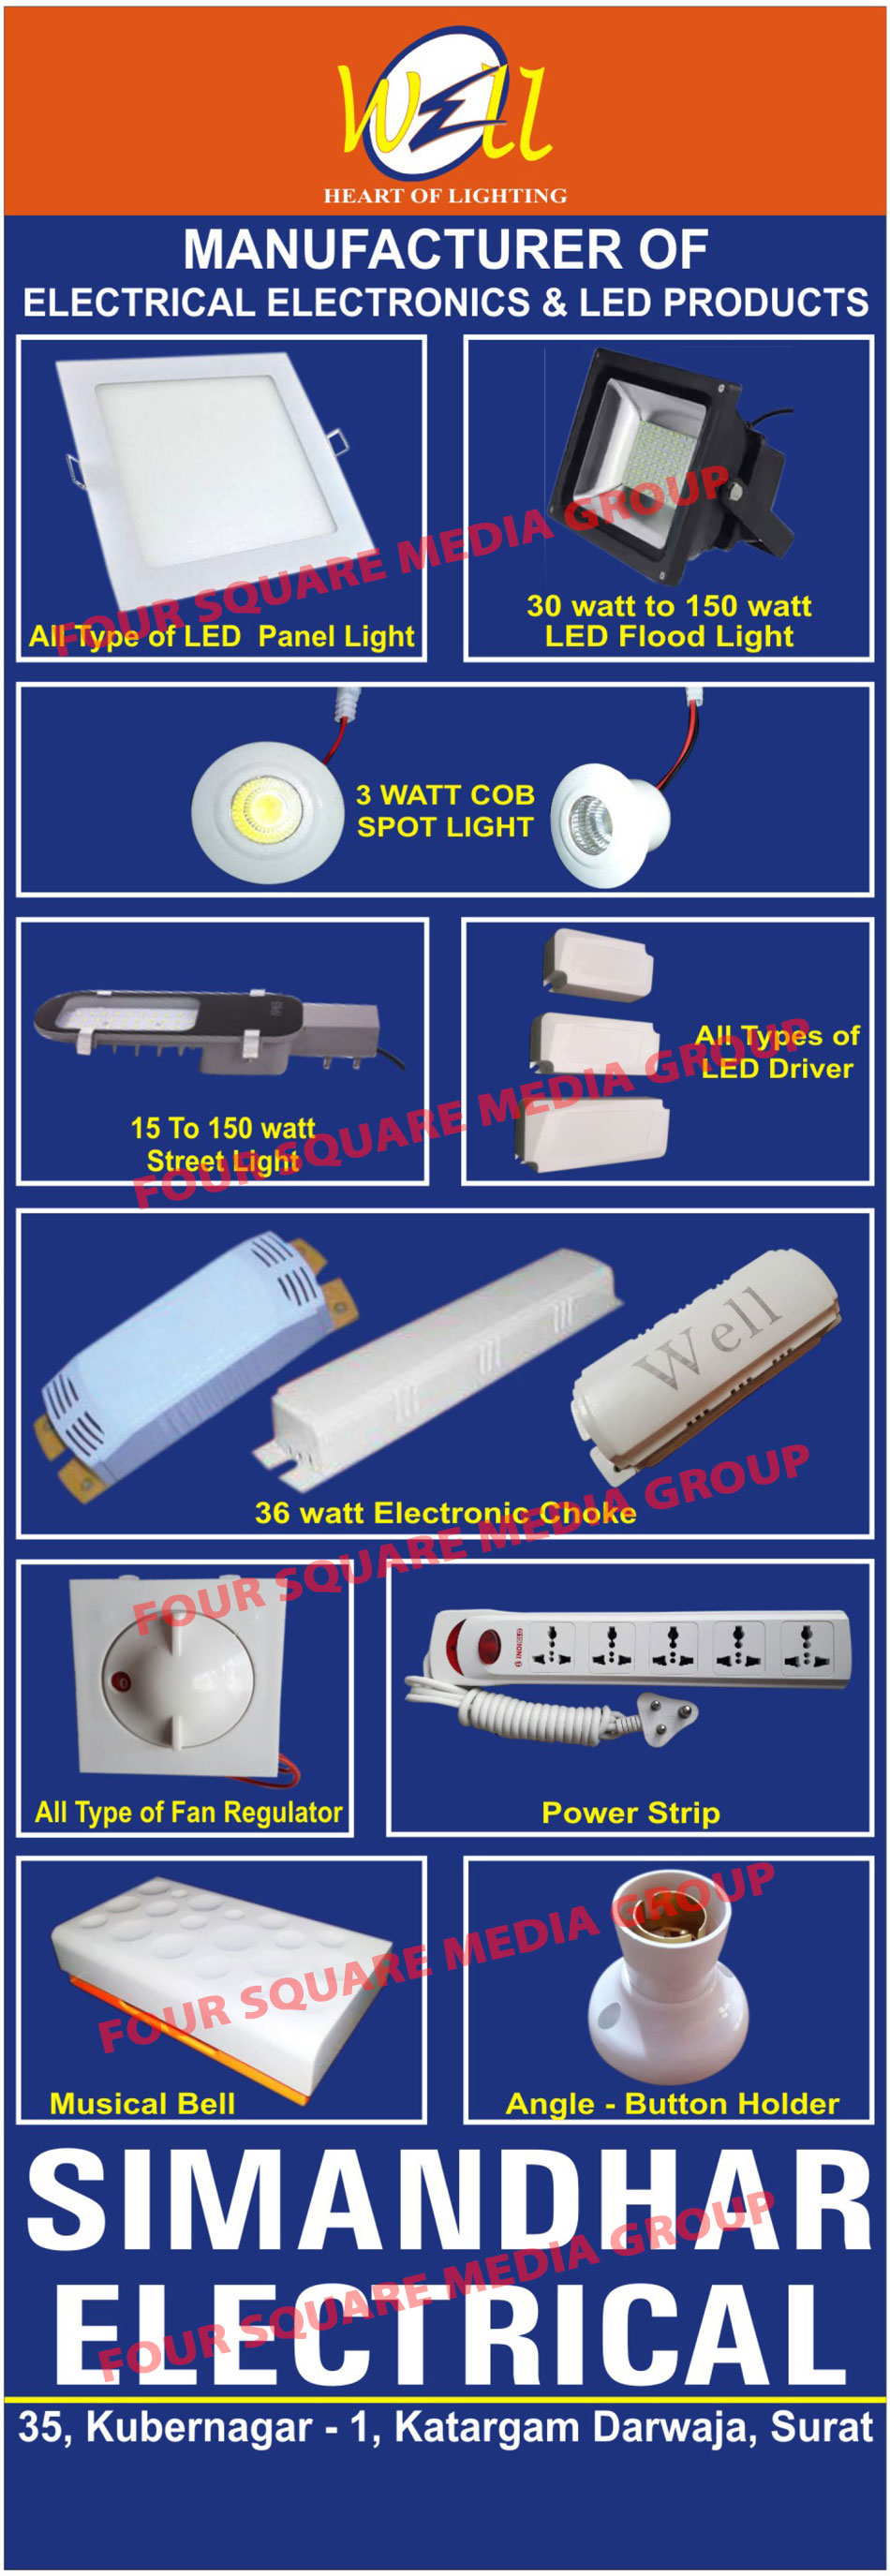 Electrical Products, Electronic Products, Led Products, Led Lights, Led Panel Lights, Led Flood Lights, COB Spot Lights, Street Lights, Led Drivers, Electronic Chokes, Fan Regulators, Power Strips, Musical Bells, Angle Button Holders